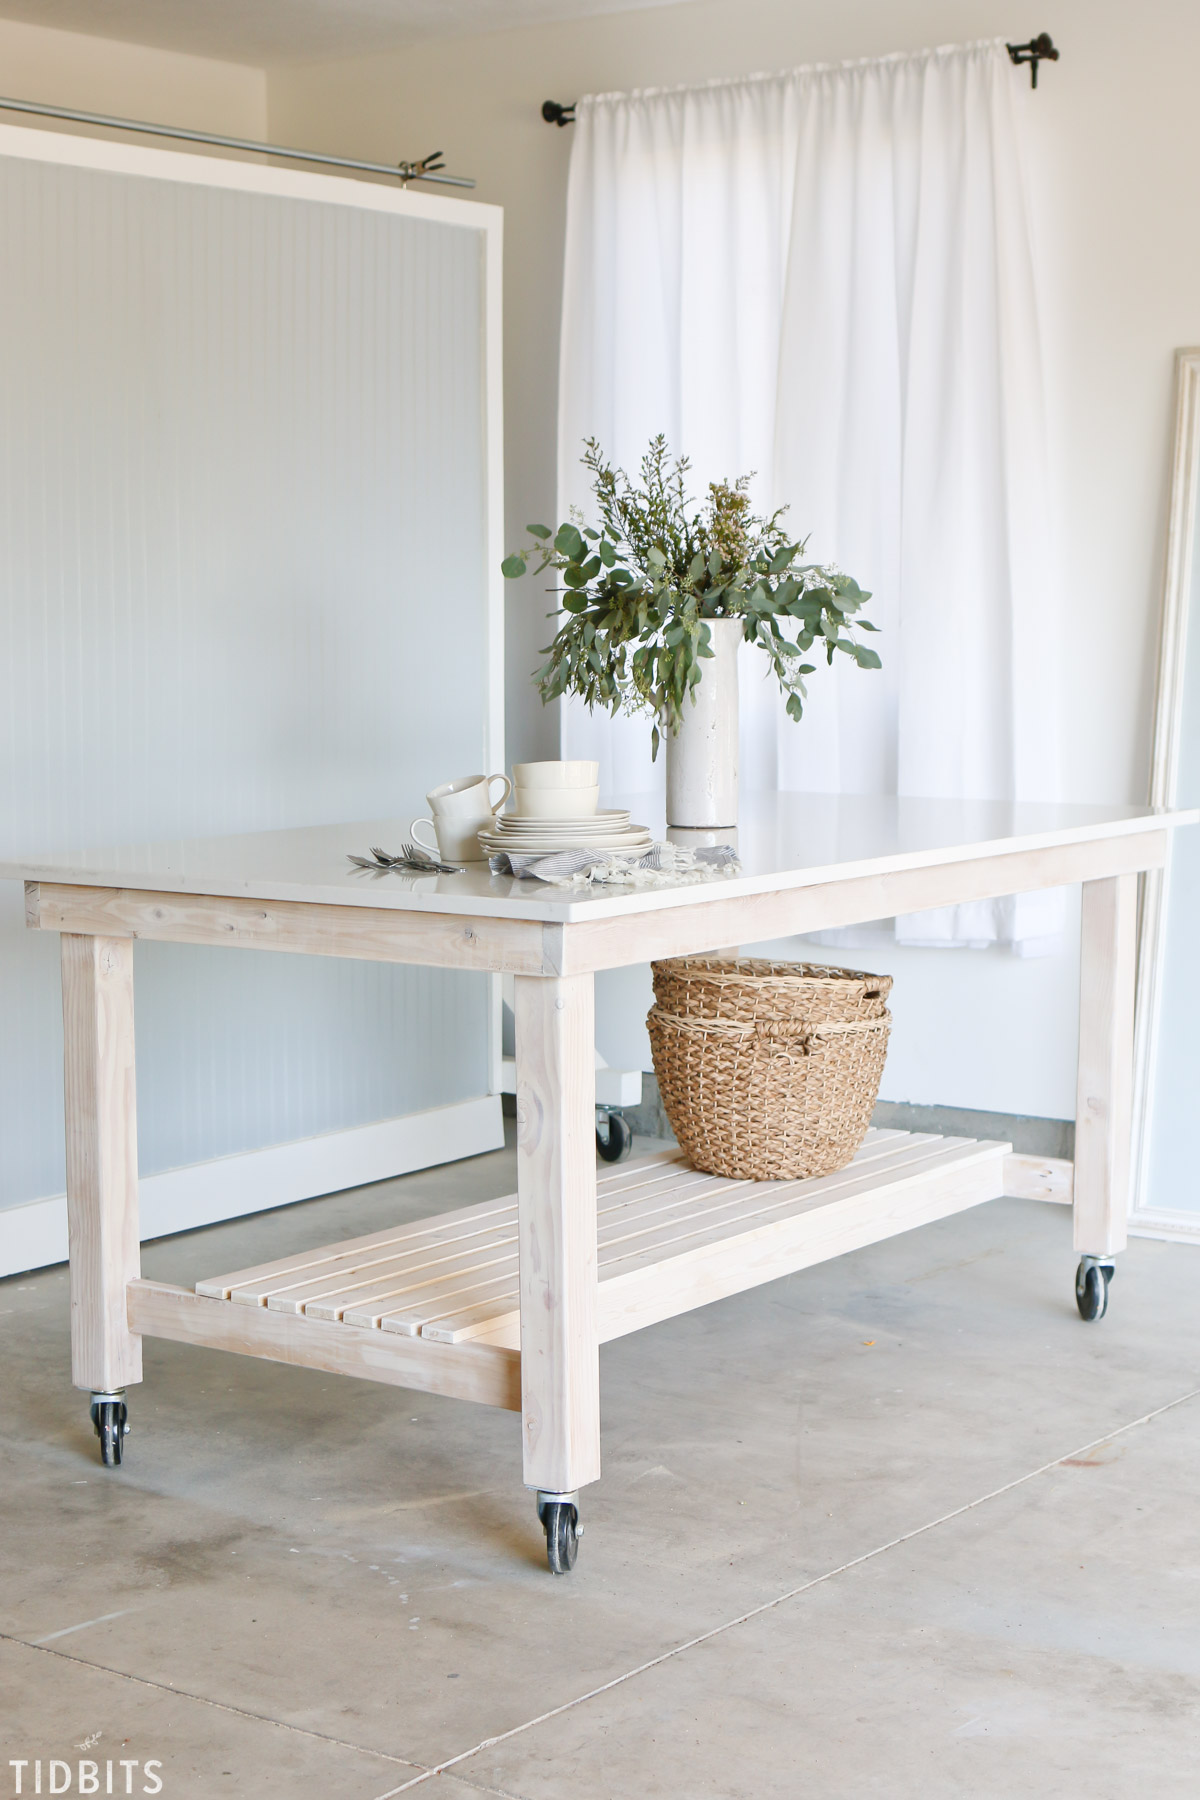 DIY Rolling Work Table / Kitchen Island - Tidbits